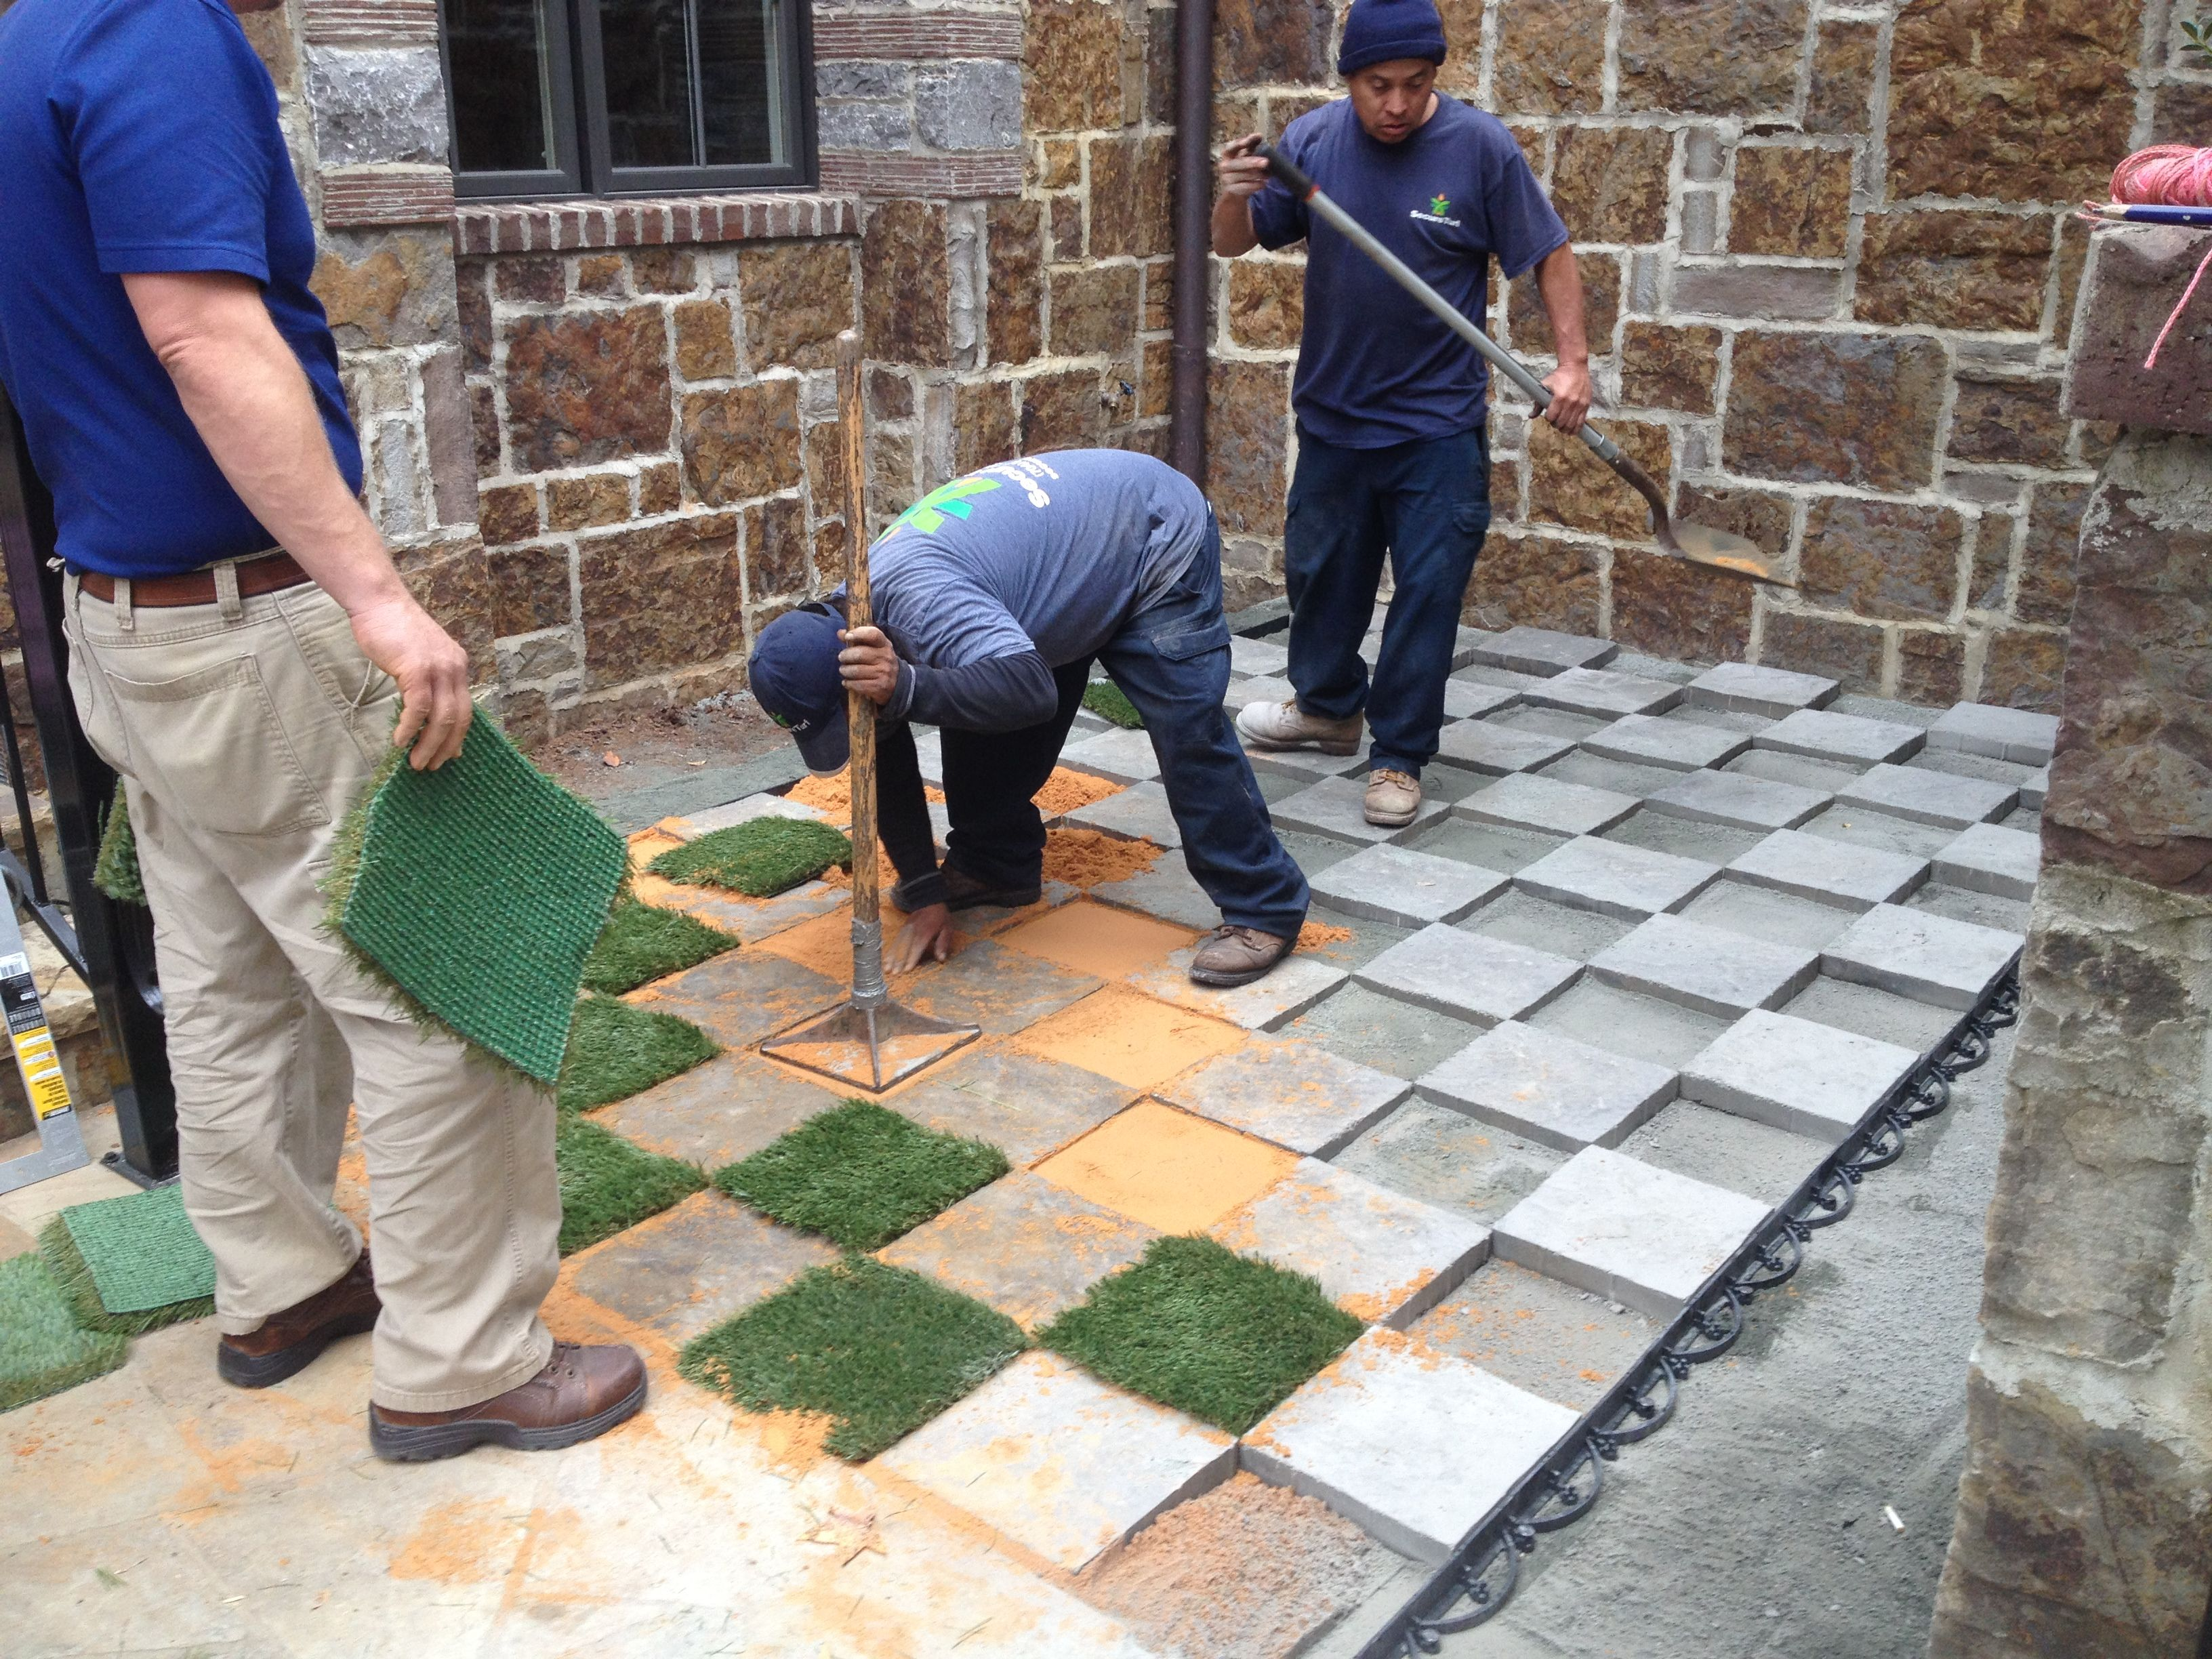 sand and turf is being installed pavers and artificial turf used